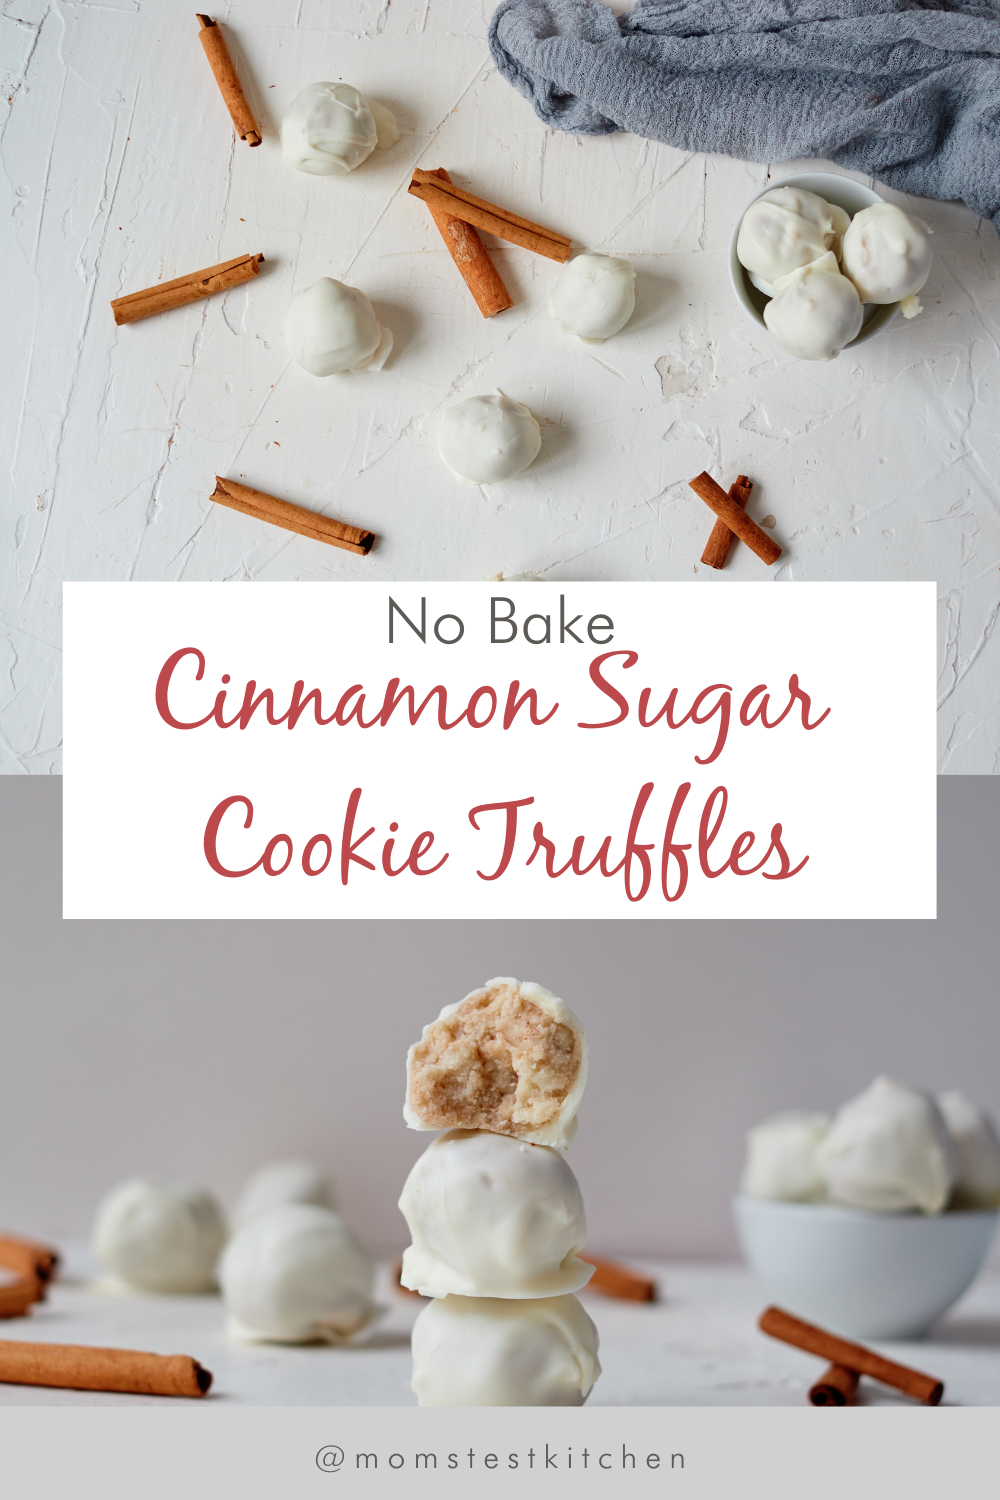 No Bake Cinnamon Sugar Cookie Truffles are the perfect treat! With minimal ingredients, this easy treat is a perfect option for your Christmas Cookie Exchange, or as a simple gift for friends and neighbors.